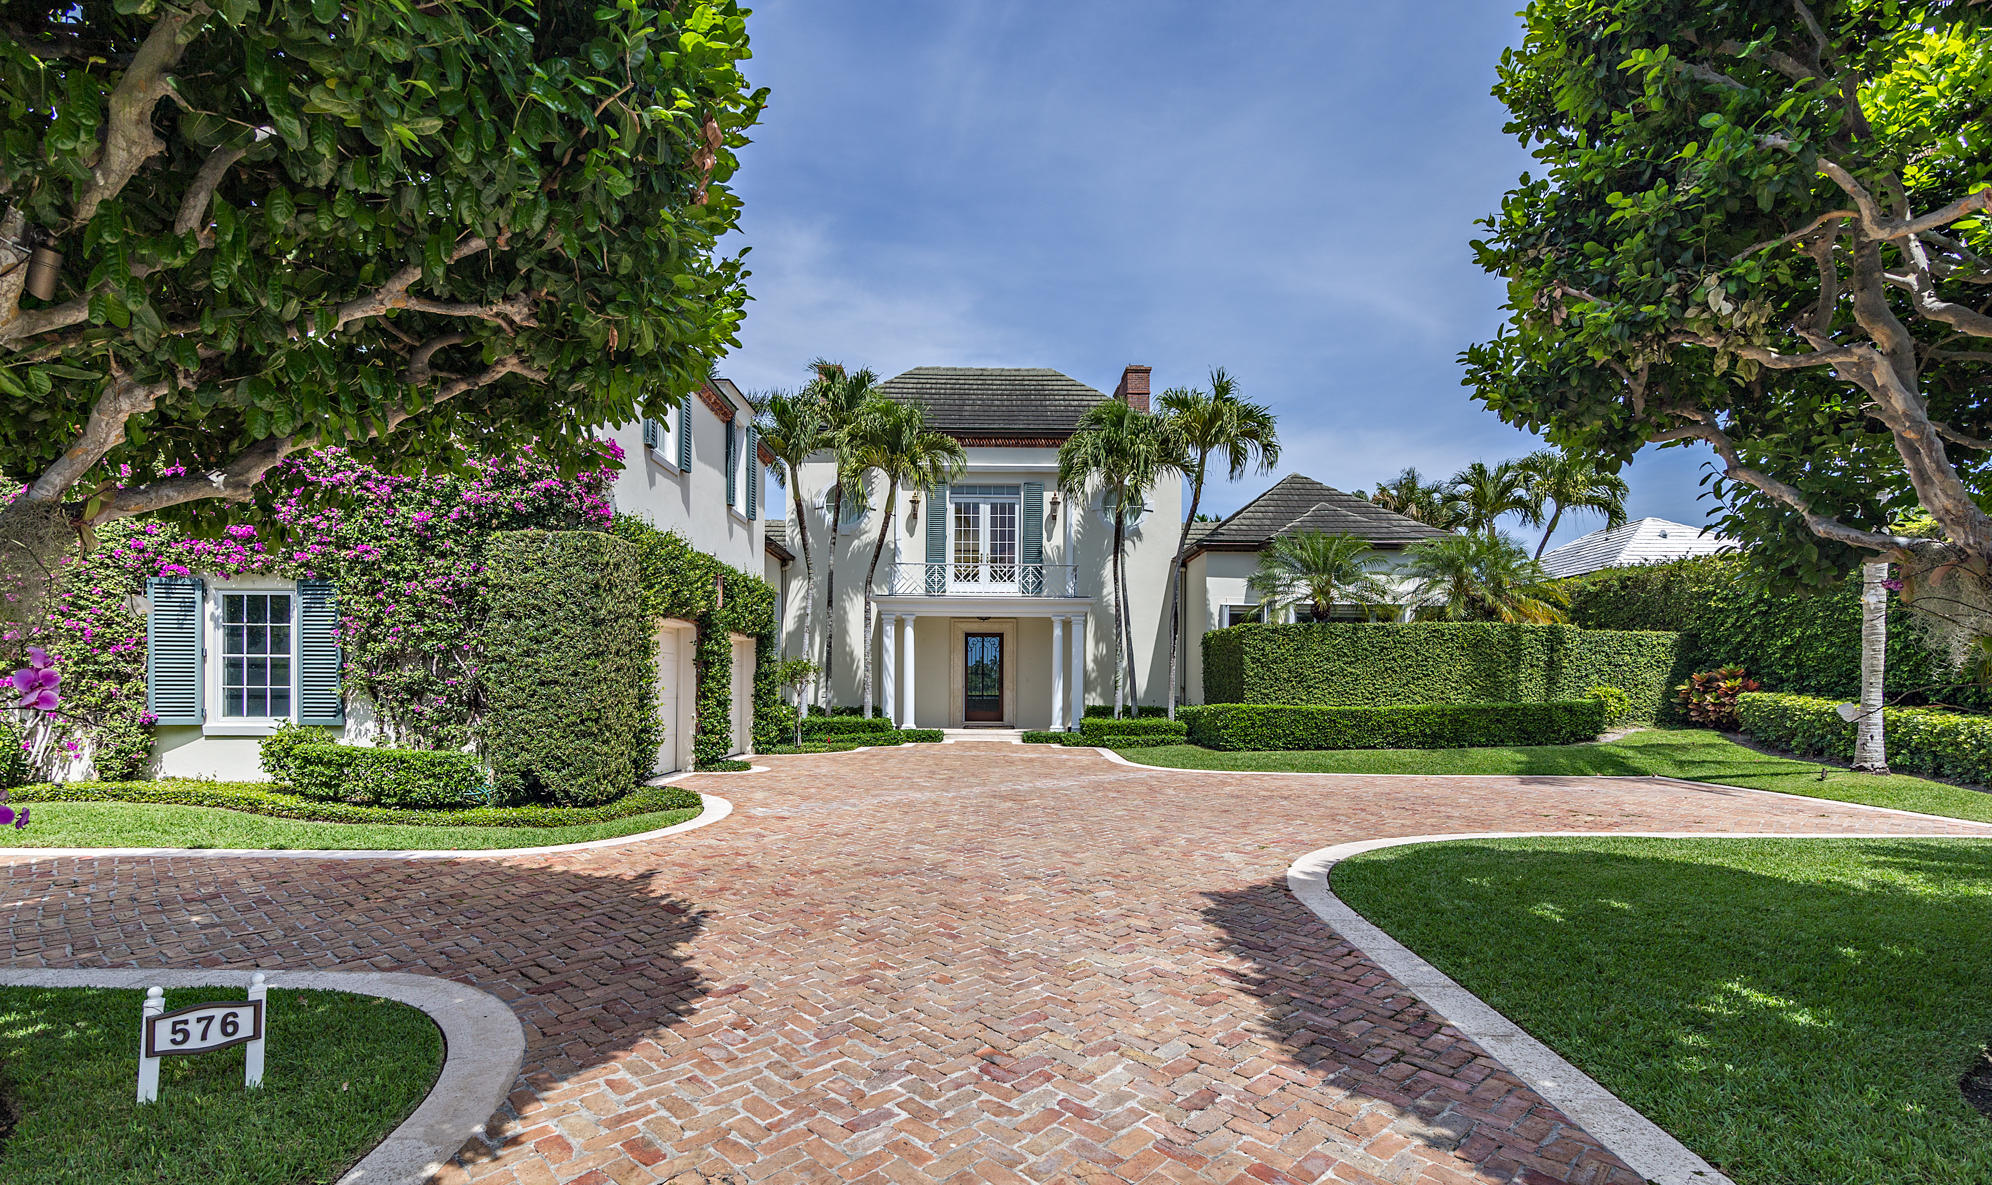 Presenting Todd Michael Glaser's newest Legacy  home on Palm Beach's Everglades Island. Direct waterfront with a dock and panoramic views overlooking the Everglades Club golf course. This 16,000 sq.ft. lot has 100 ft. of waterfrontage. The house boasts soaring ceilings throughout, the downstairs master suite features vaulted ceiling, his and her master bathrooms and 2 enormous walk-in closets. There are 4 additional bedrooms and 5 bathrooms in total plus 2 half baths. Large covered outdoor loggia overlooking the swimming pool creates an ideal setting for entertaining. Completion date for the renovation is scheduled for October of 2021. Other amenities include a full house generator and a 2 car garage. Roof was replaced in 2006. Impact windows and doors throughout except the three sliding doors in the living room.